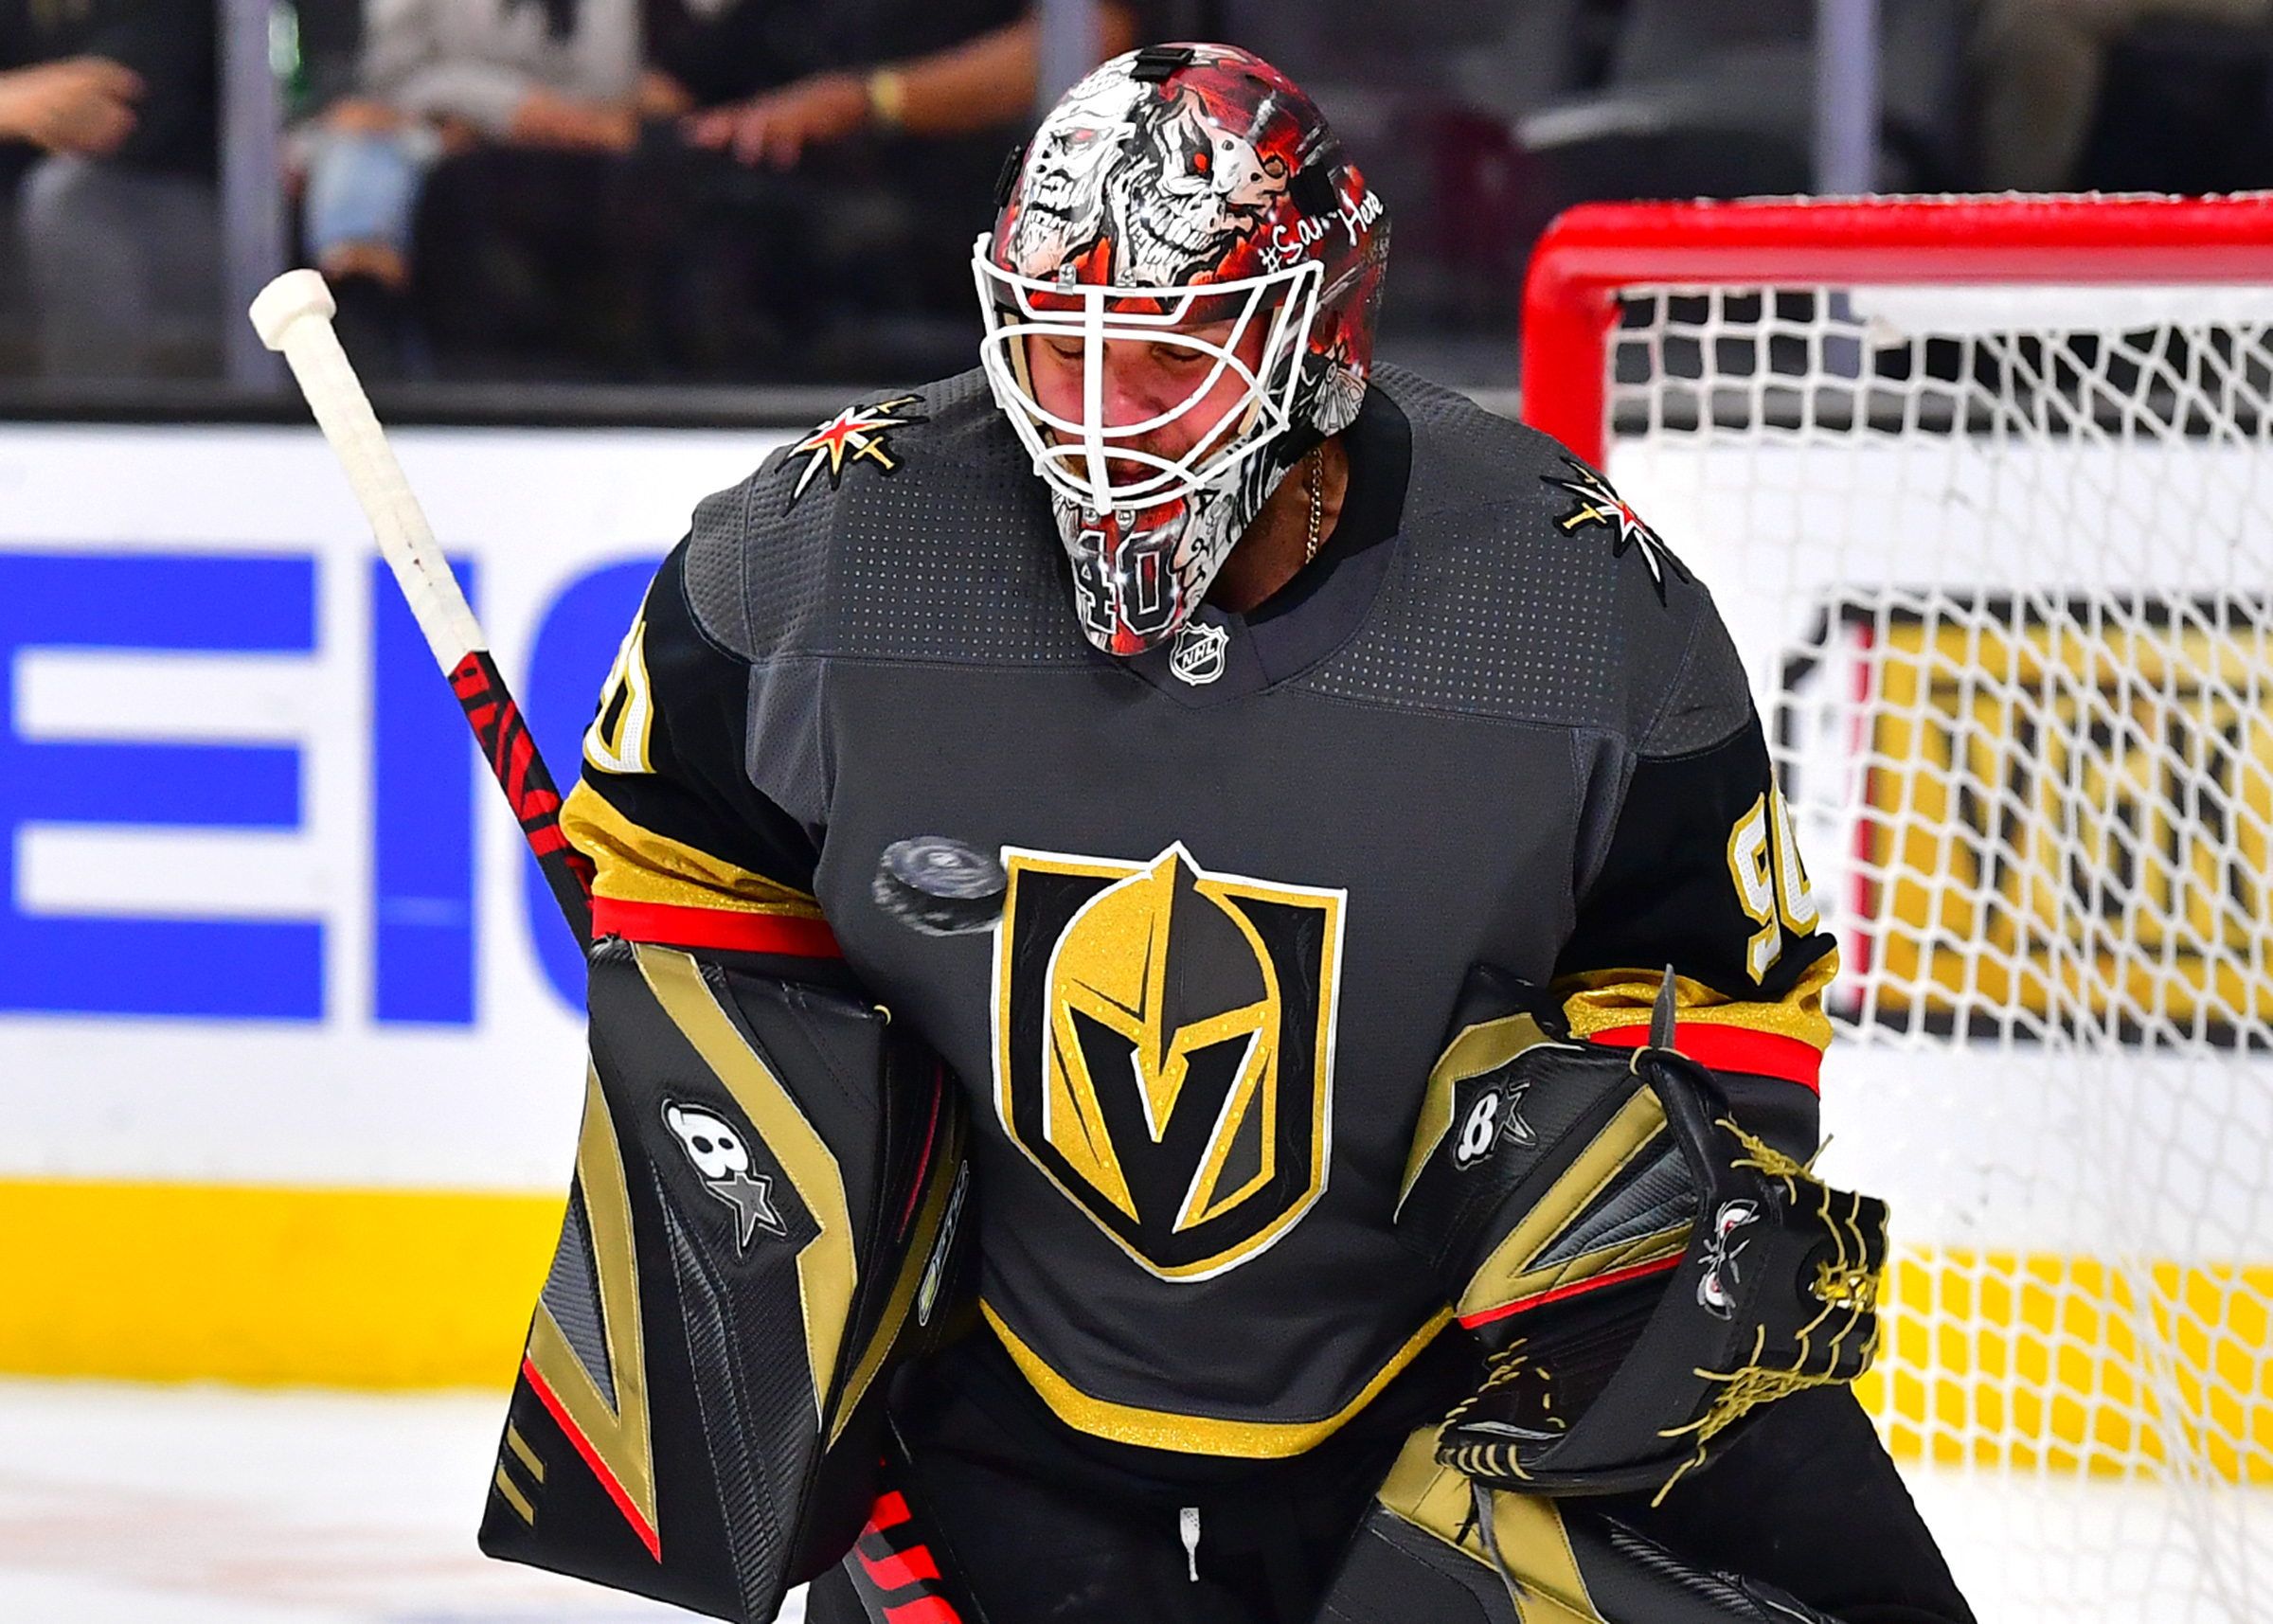 Robin Lehner records first shutout while with the Vegas Golden Knights